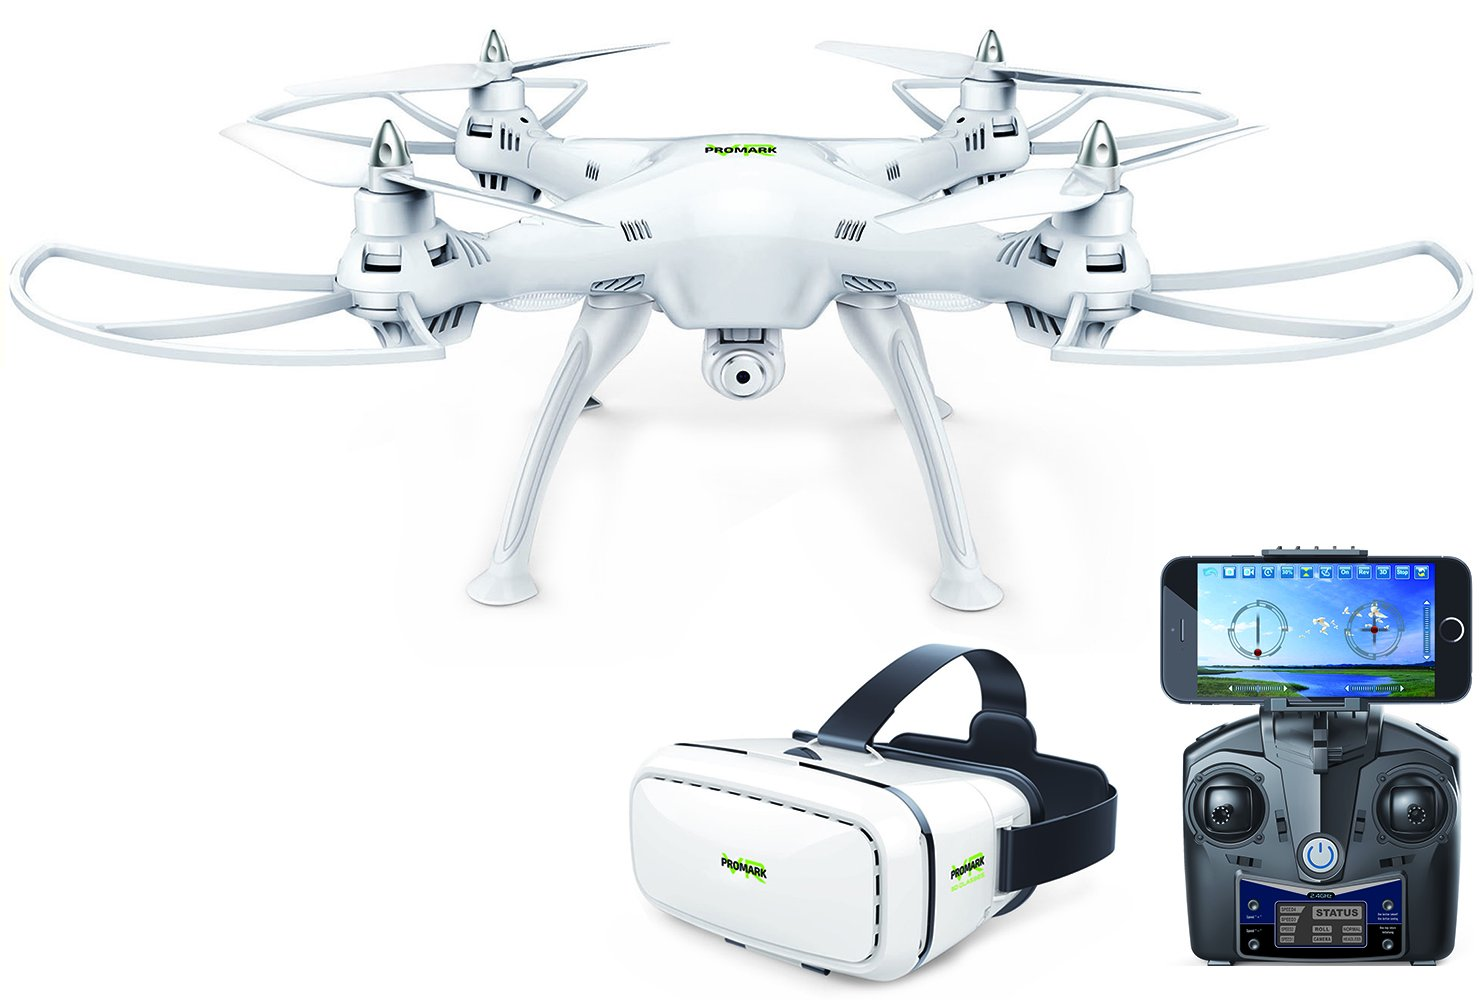 Amazon Promark P70 Drone With 3D VR Goggles And HD Camera White Toys Games